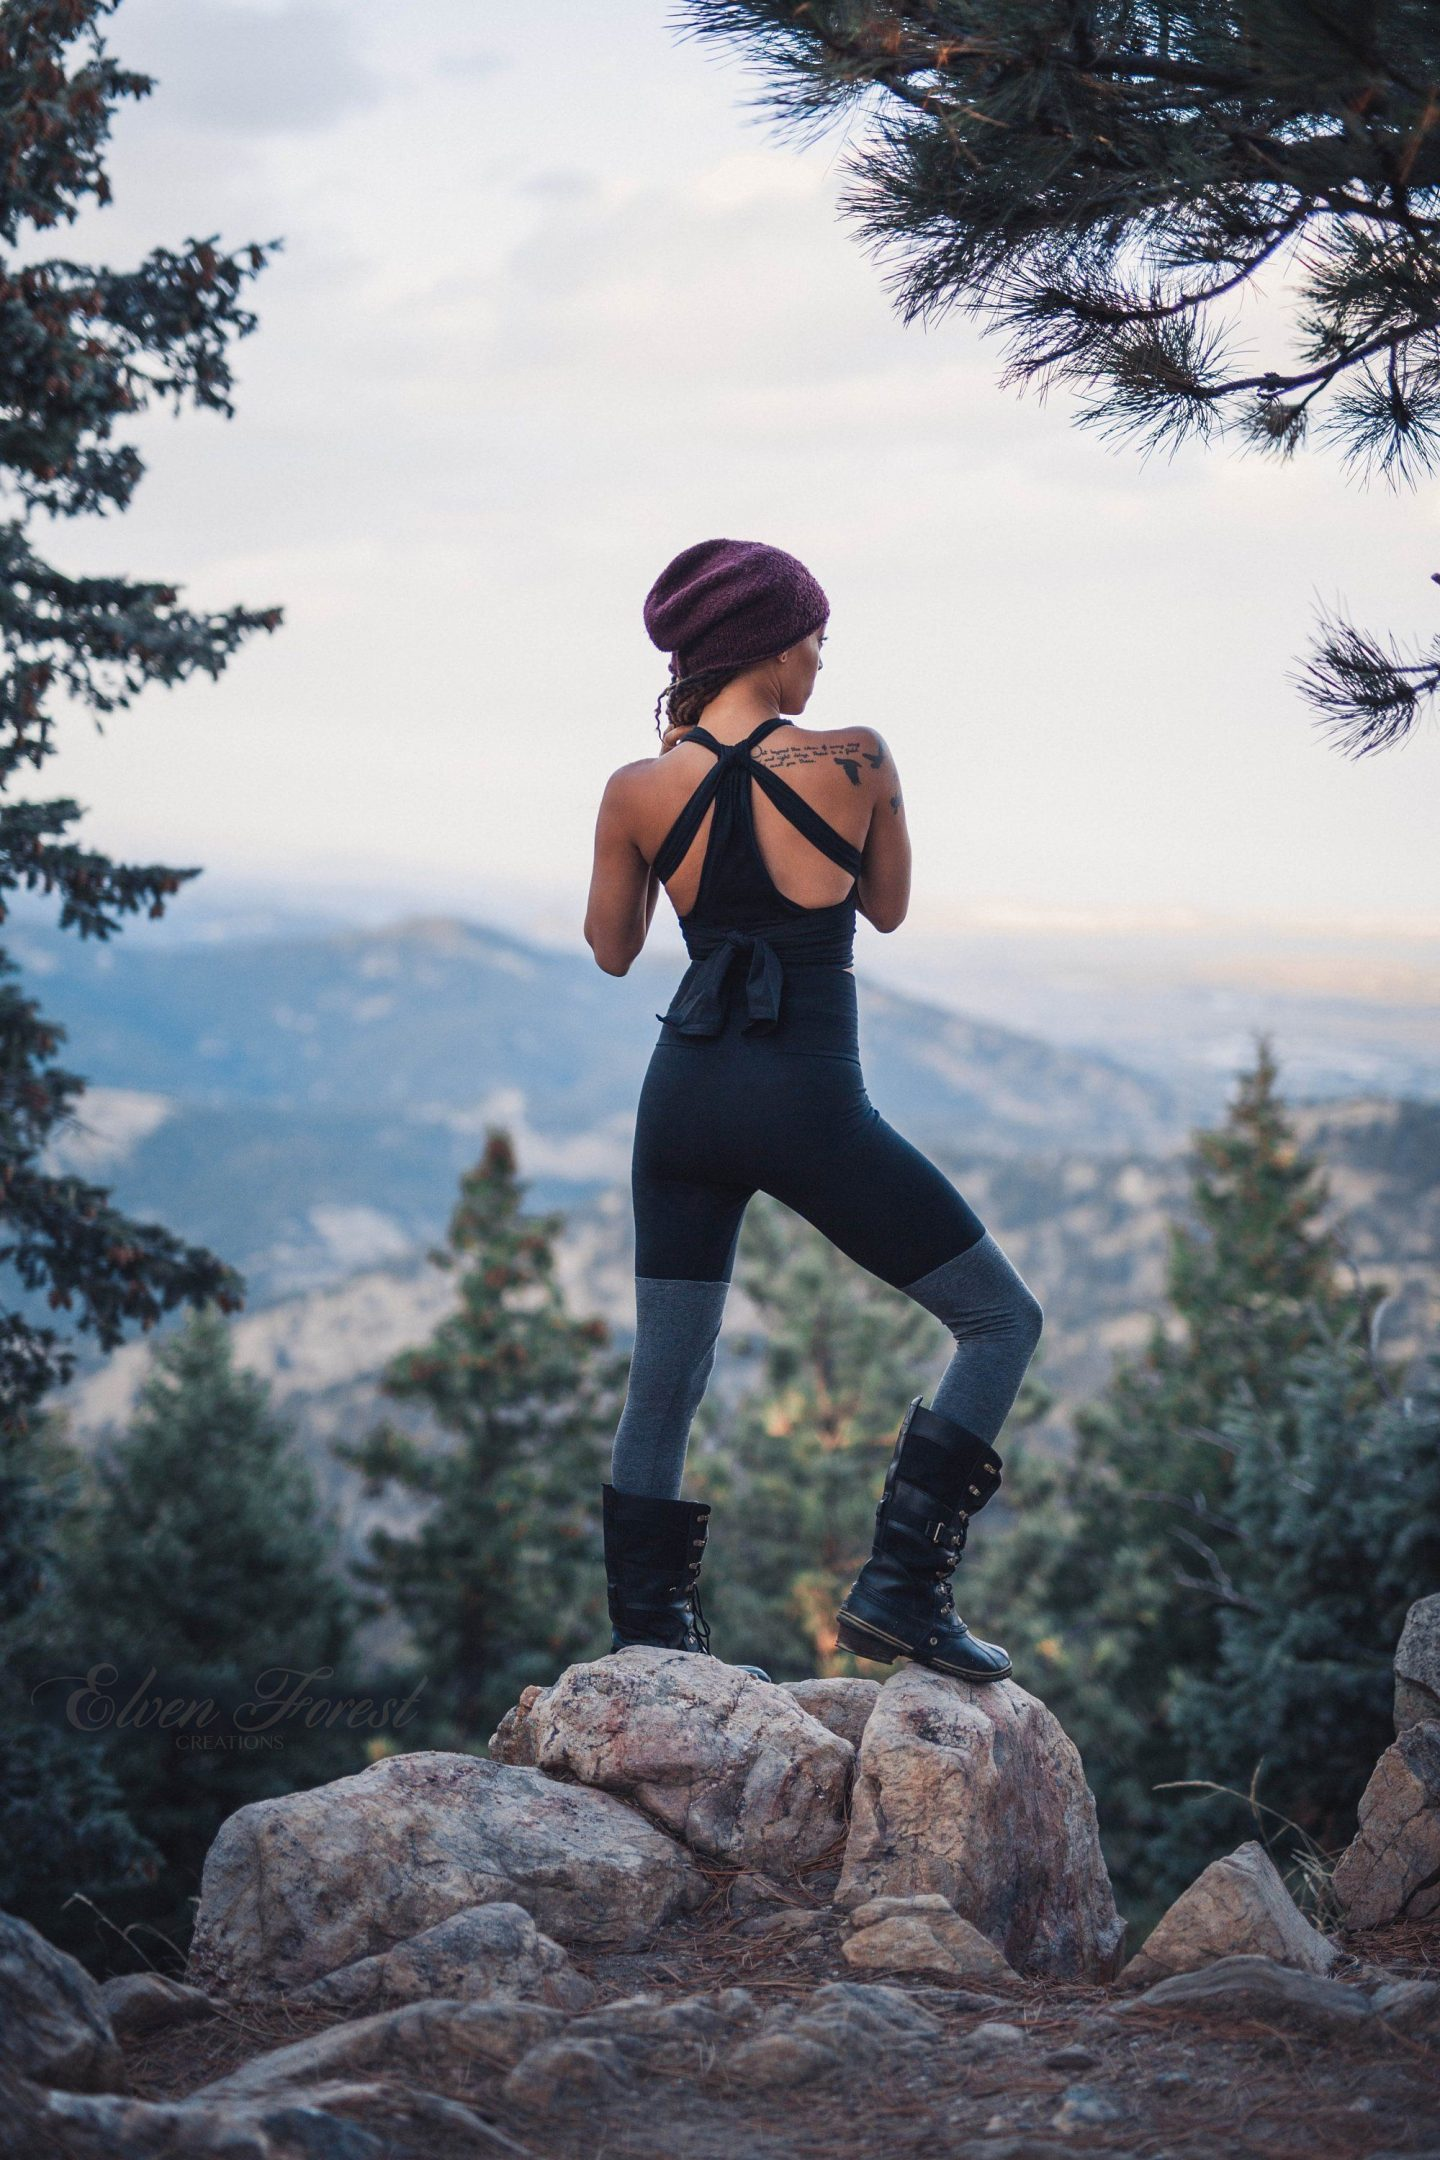 Summer hiking outfit with leggings